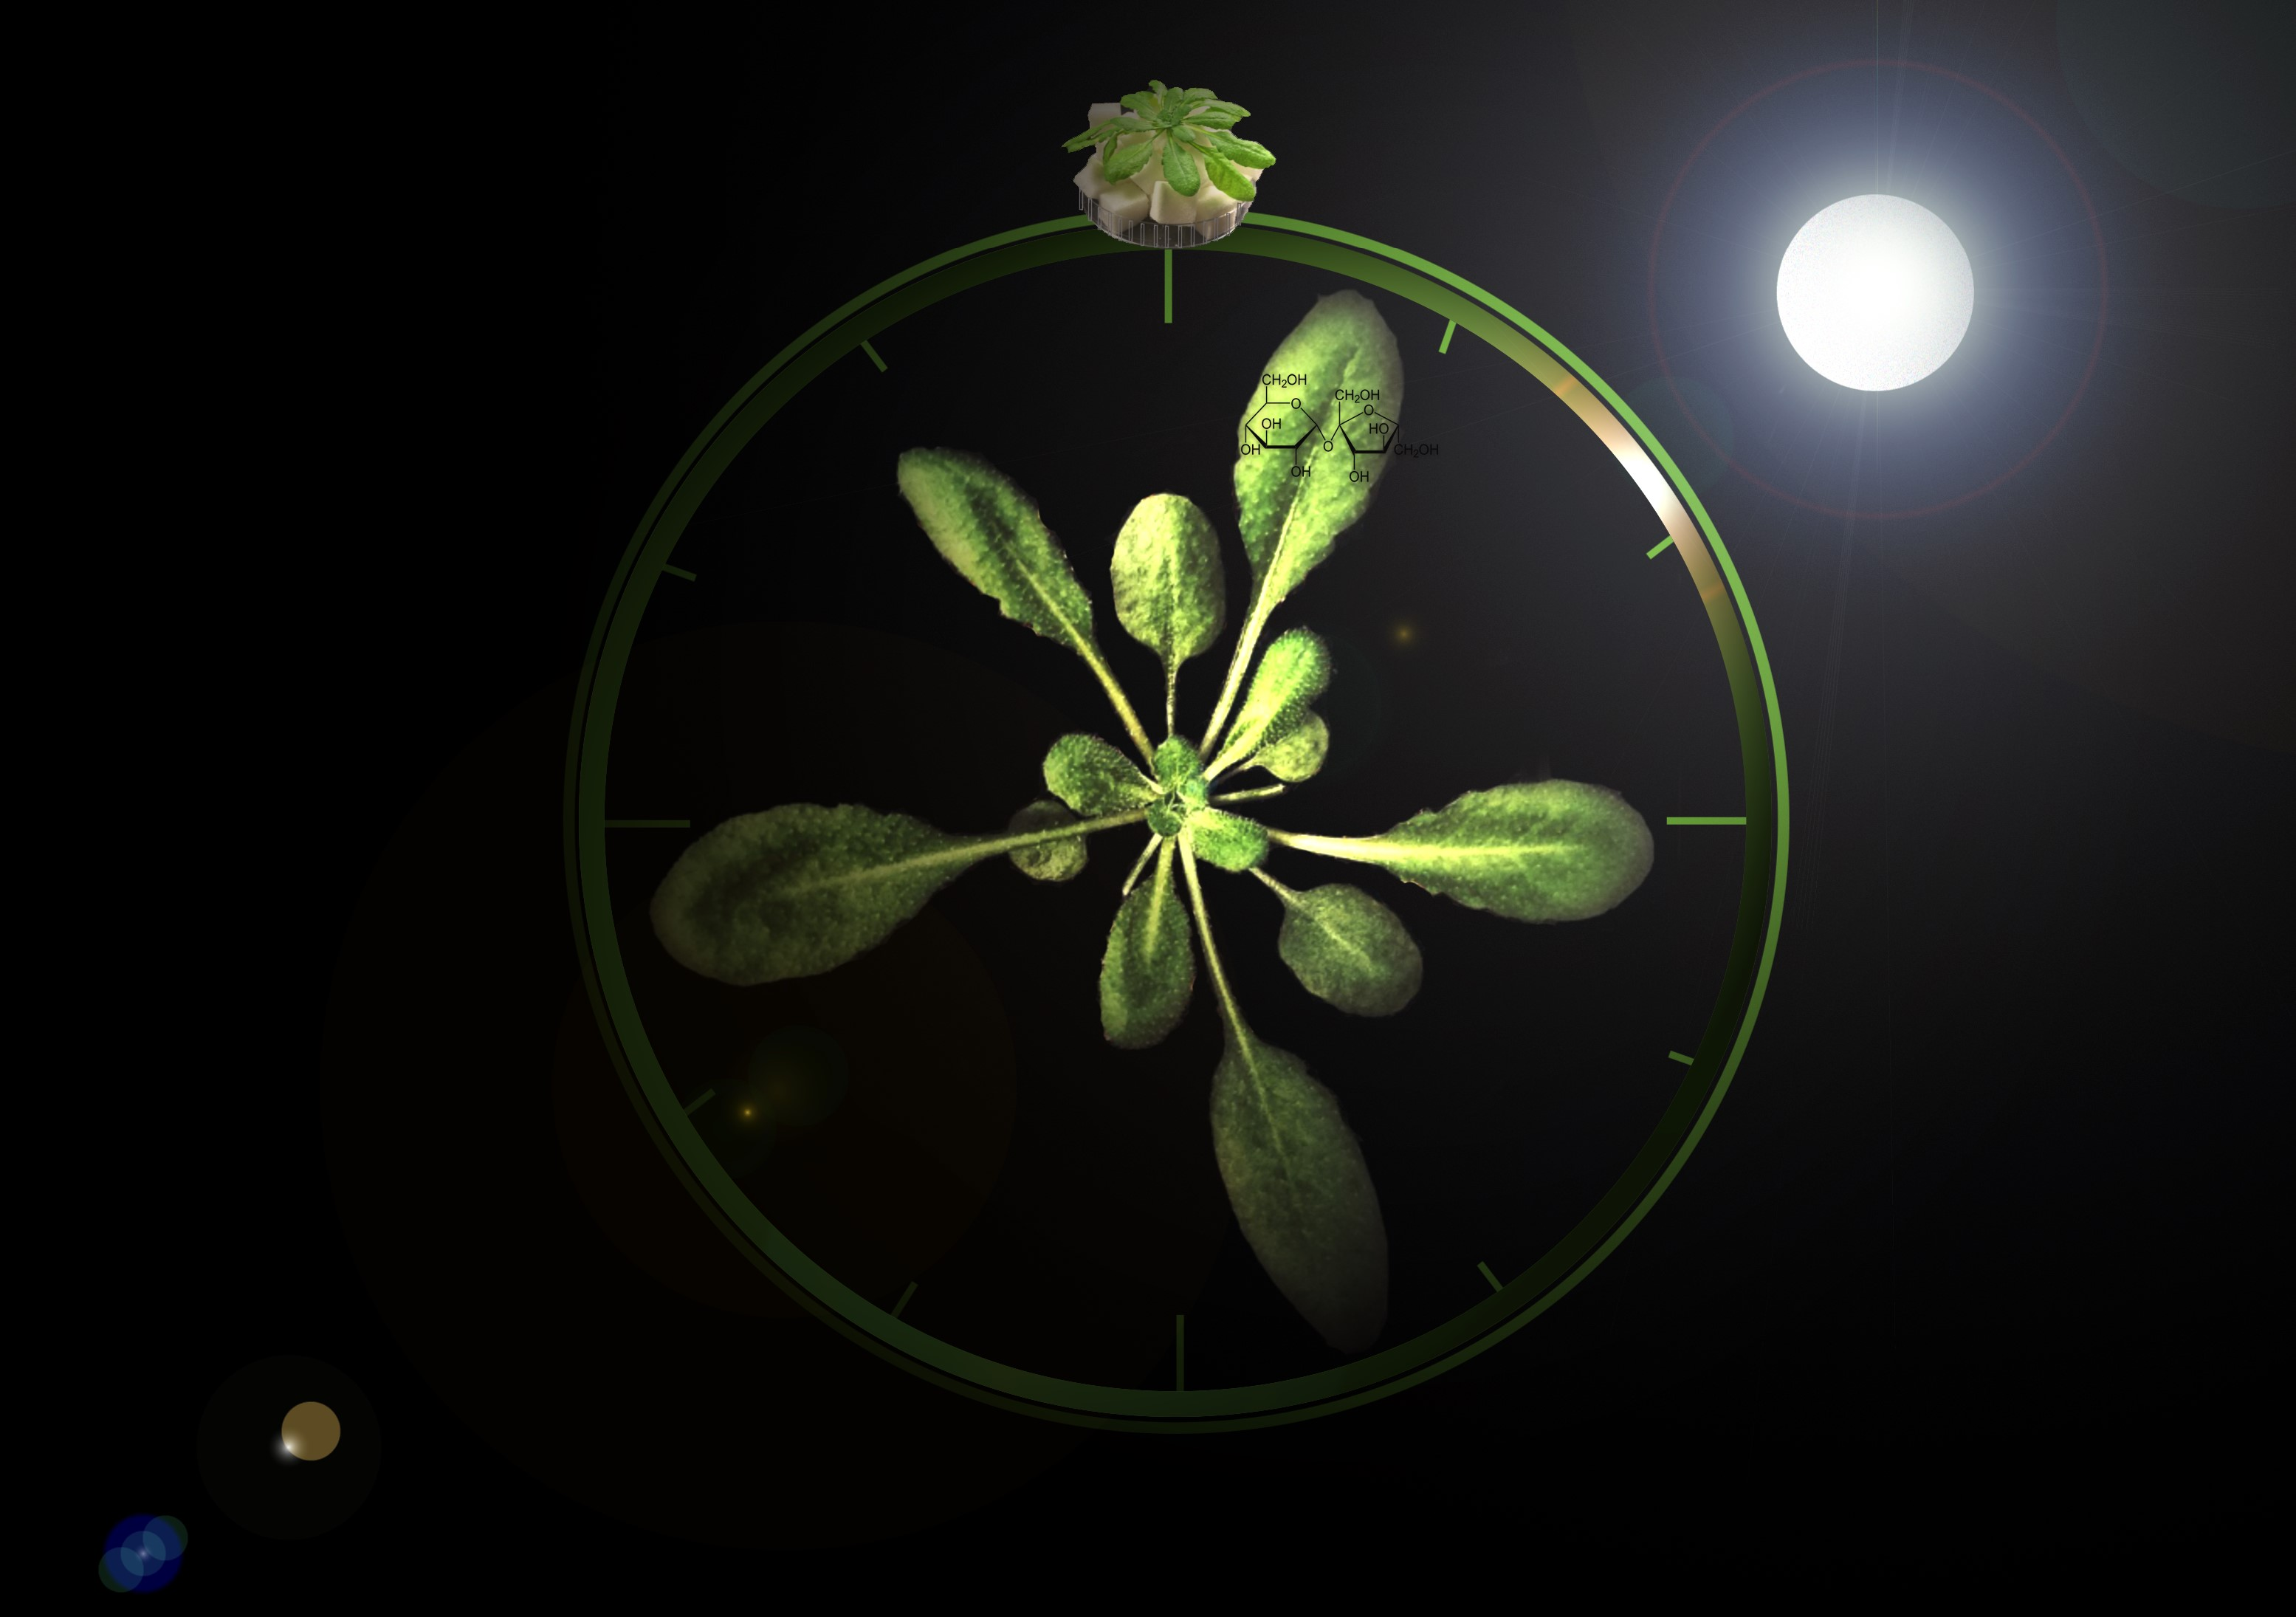 According to a new study, plants regulate their circadian rhythms by continuously measuring the amount of sugars in their cells.